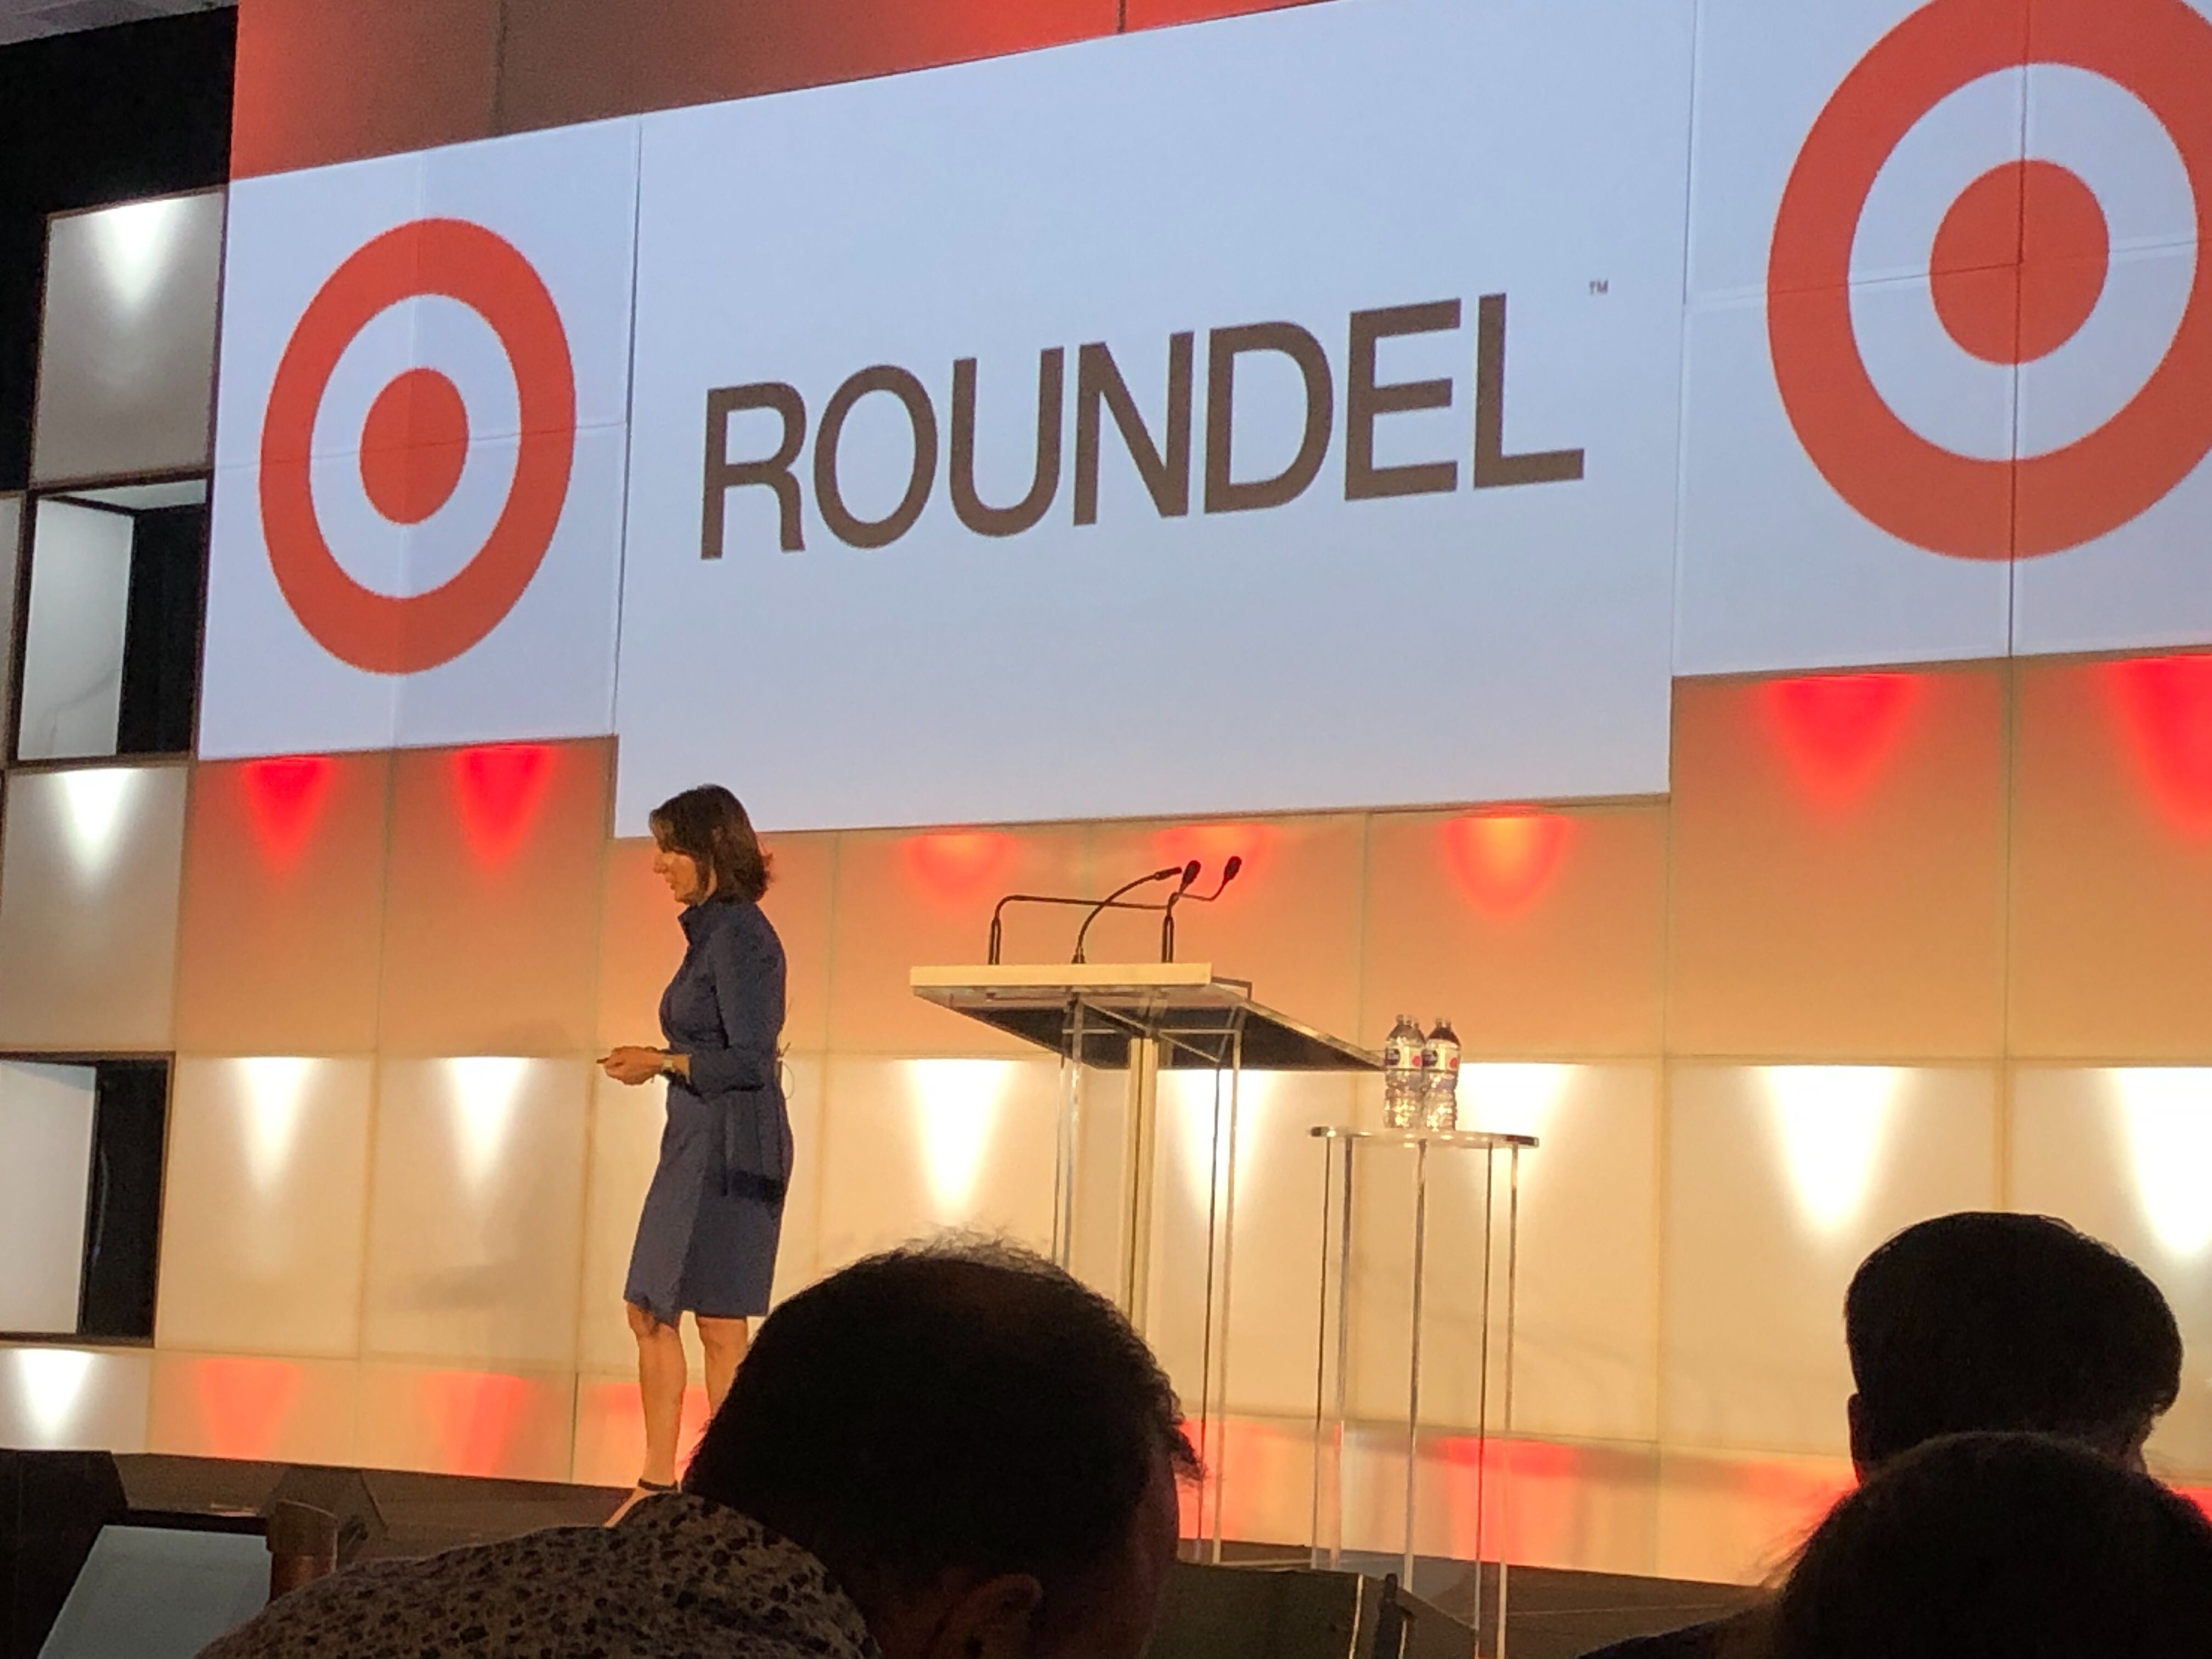 Target and Roundel Image from the ANA Conference.